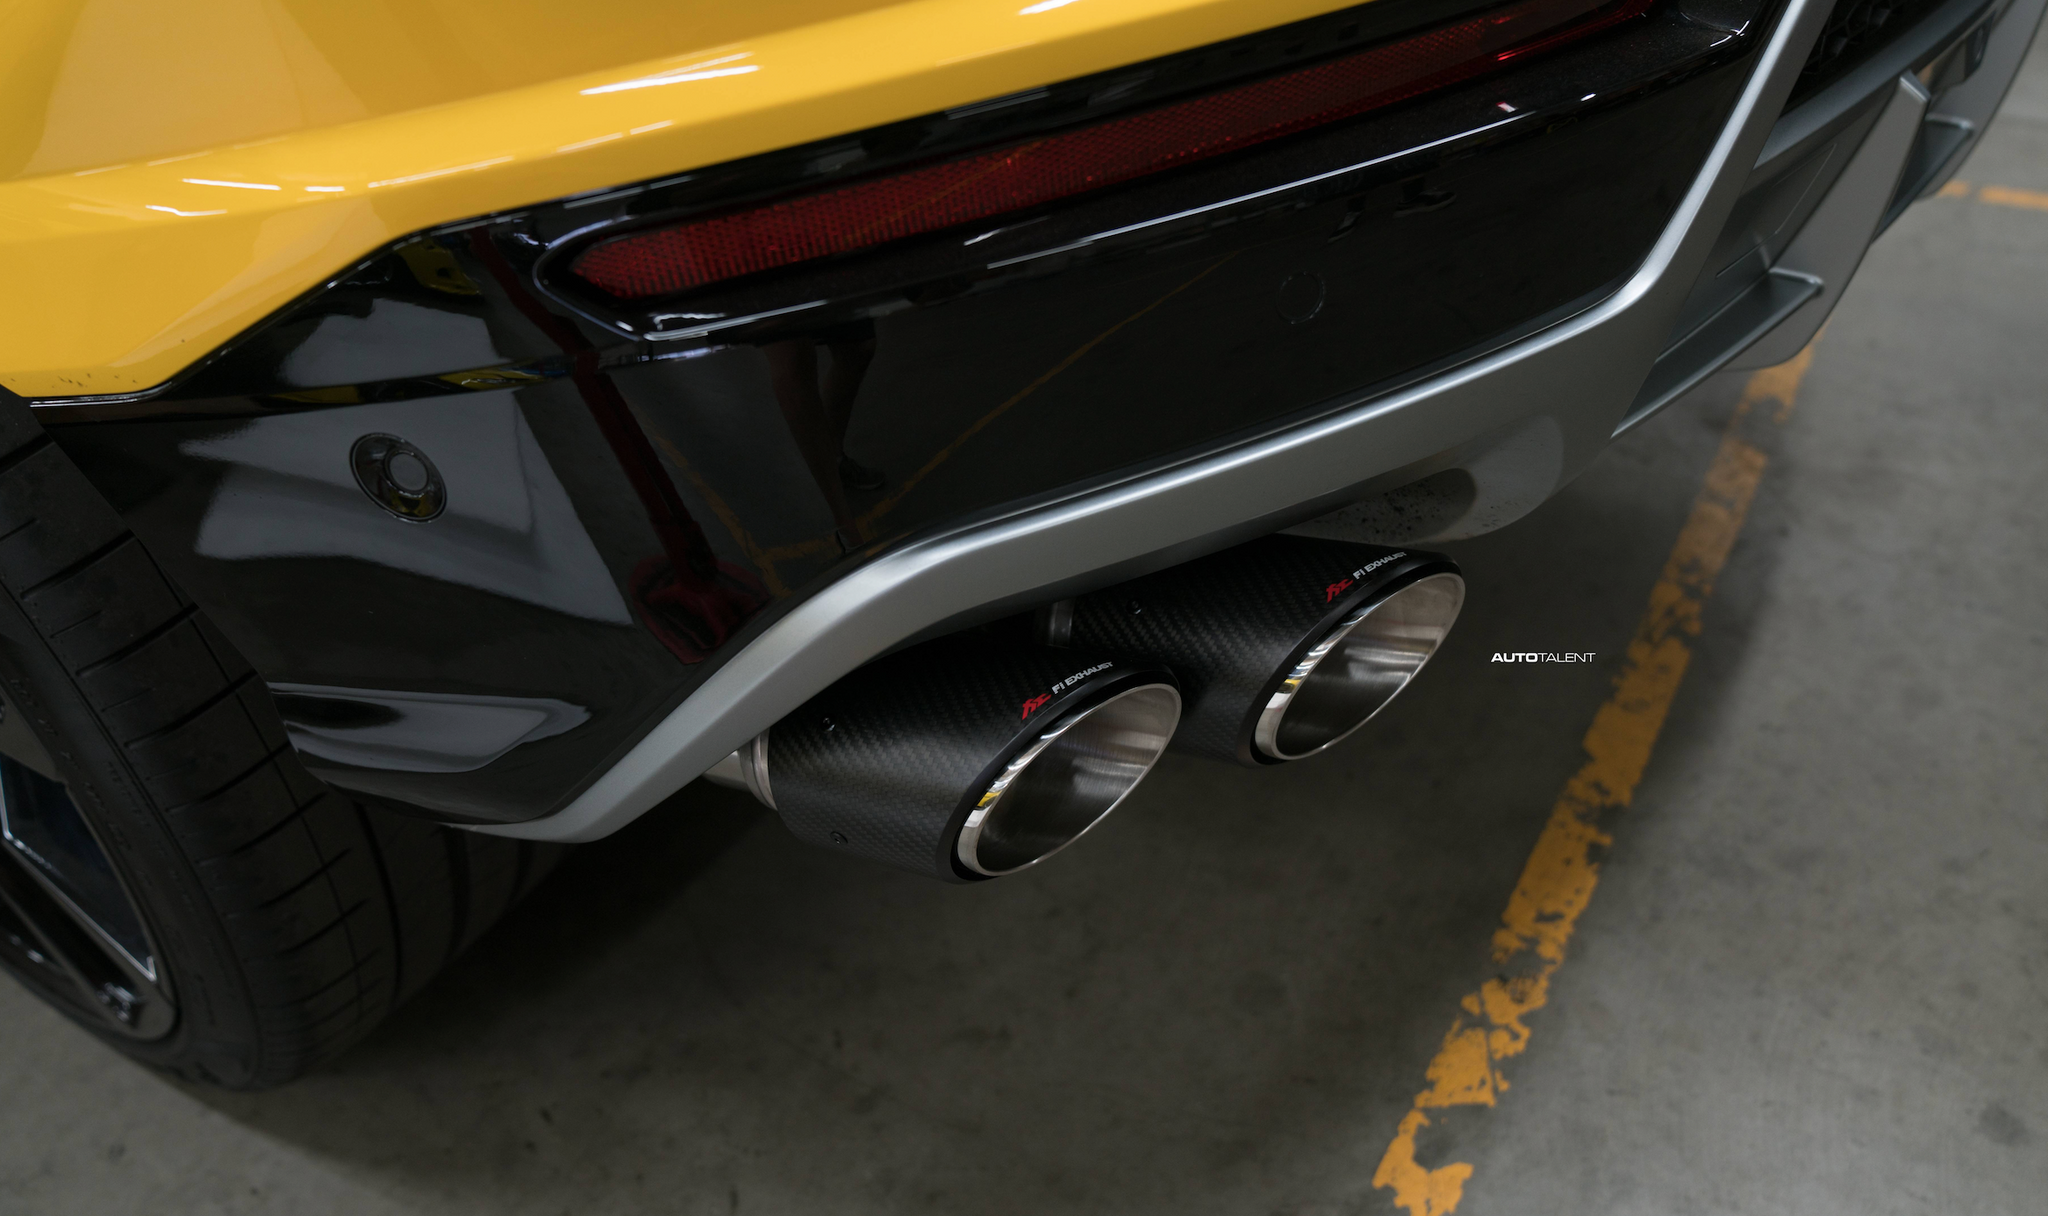 FI Urus Exhaust installed